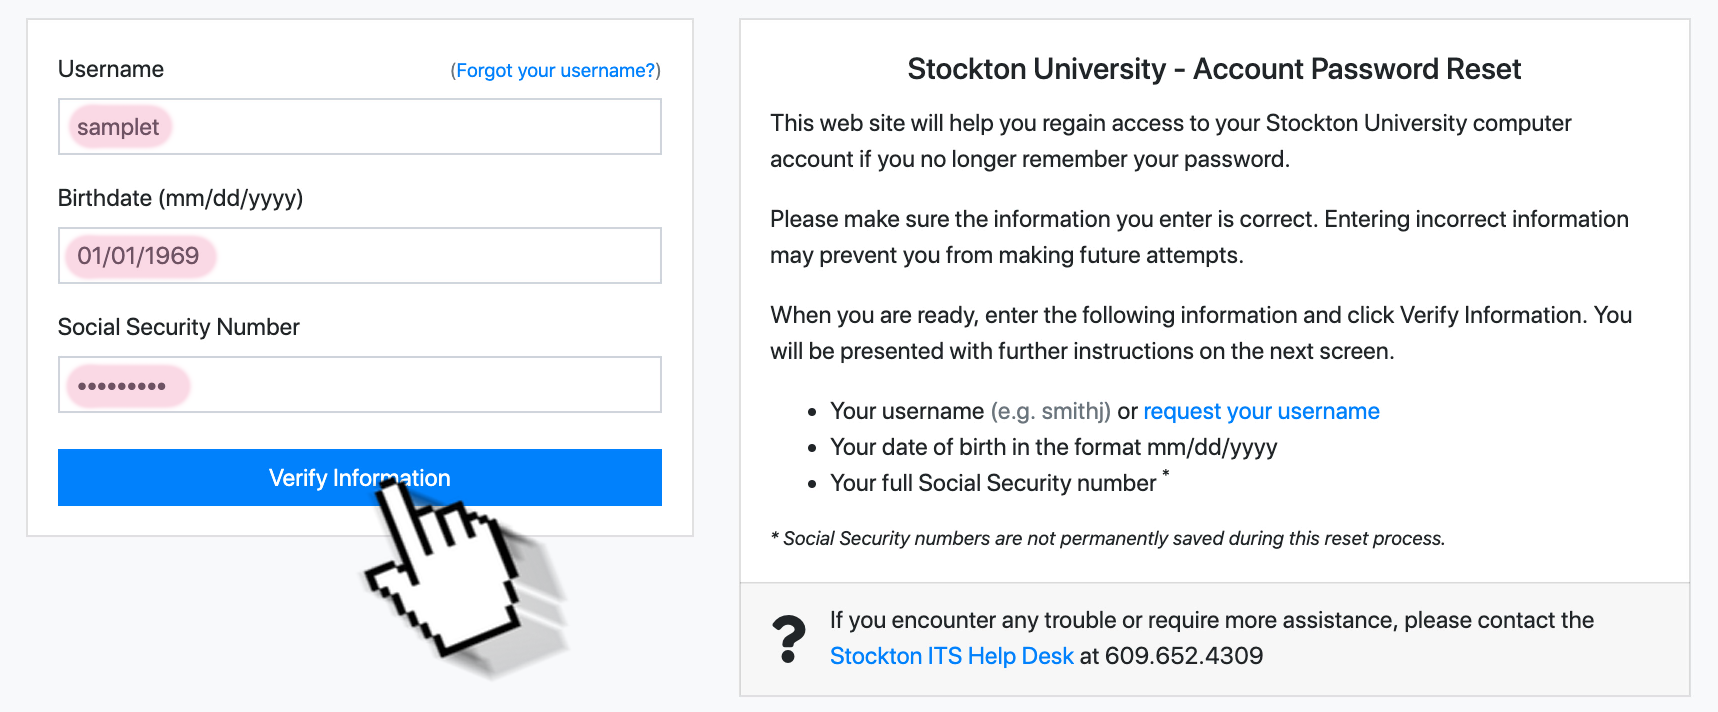 A screenshot of the GoStockton Portal password reset form. It indicates the three fields to fill in for identity verification - username, date of birth, and social security number.